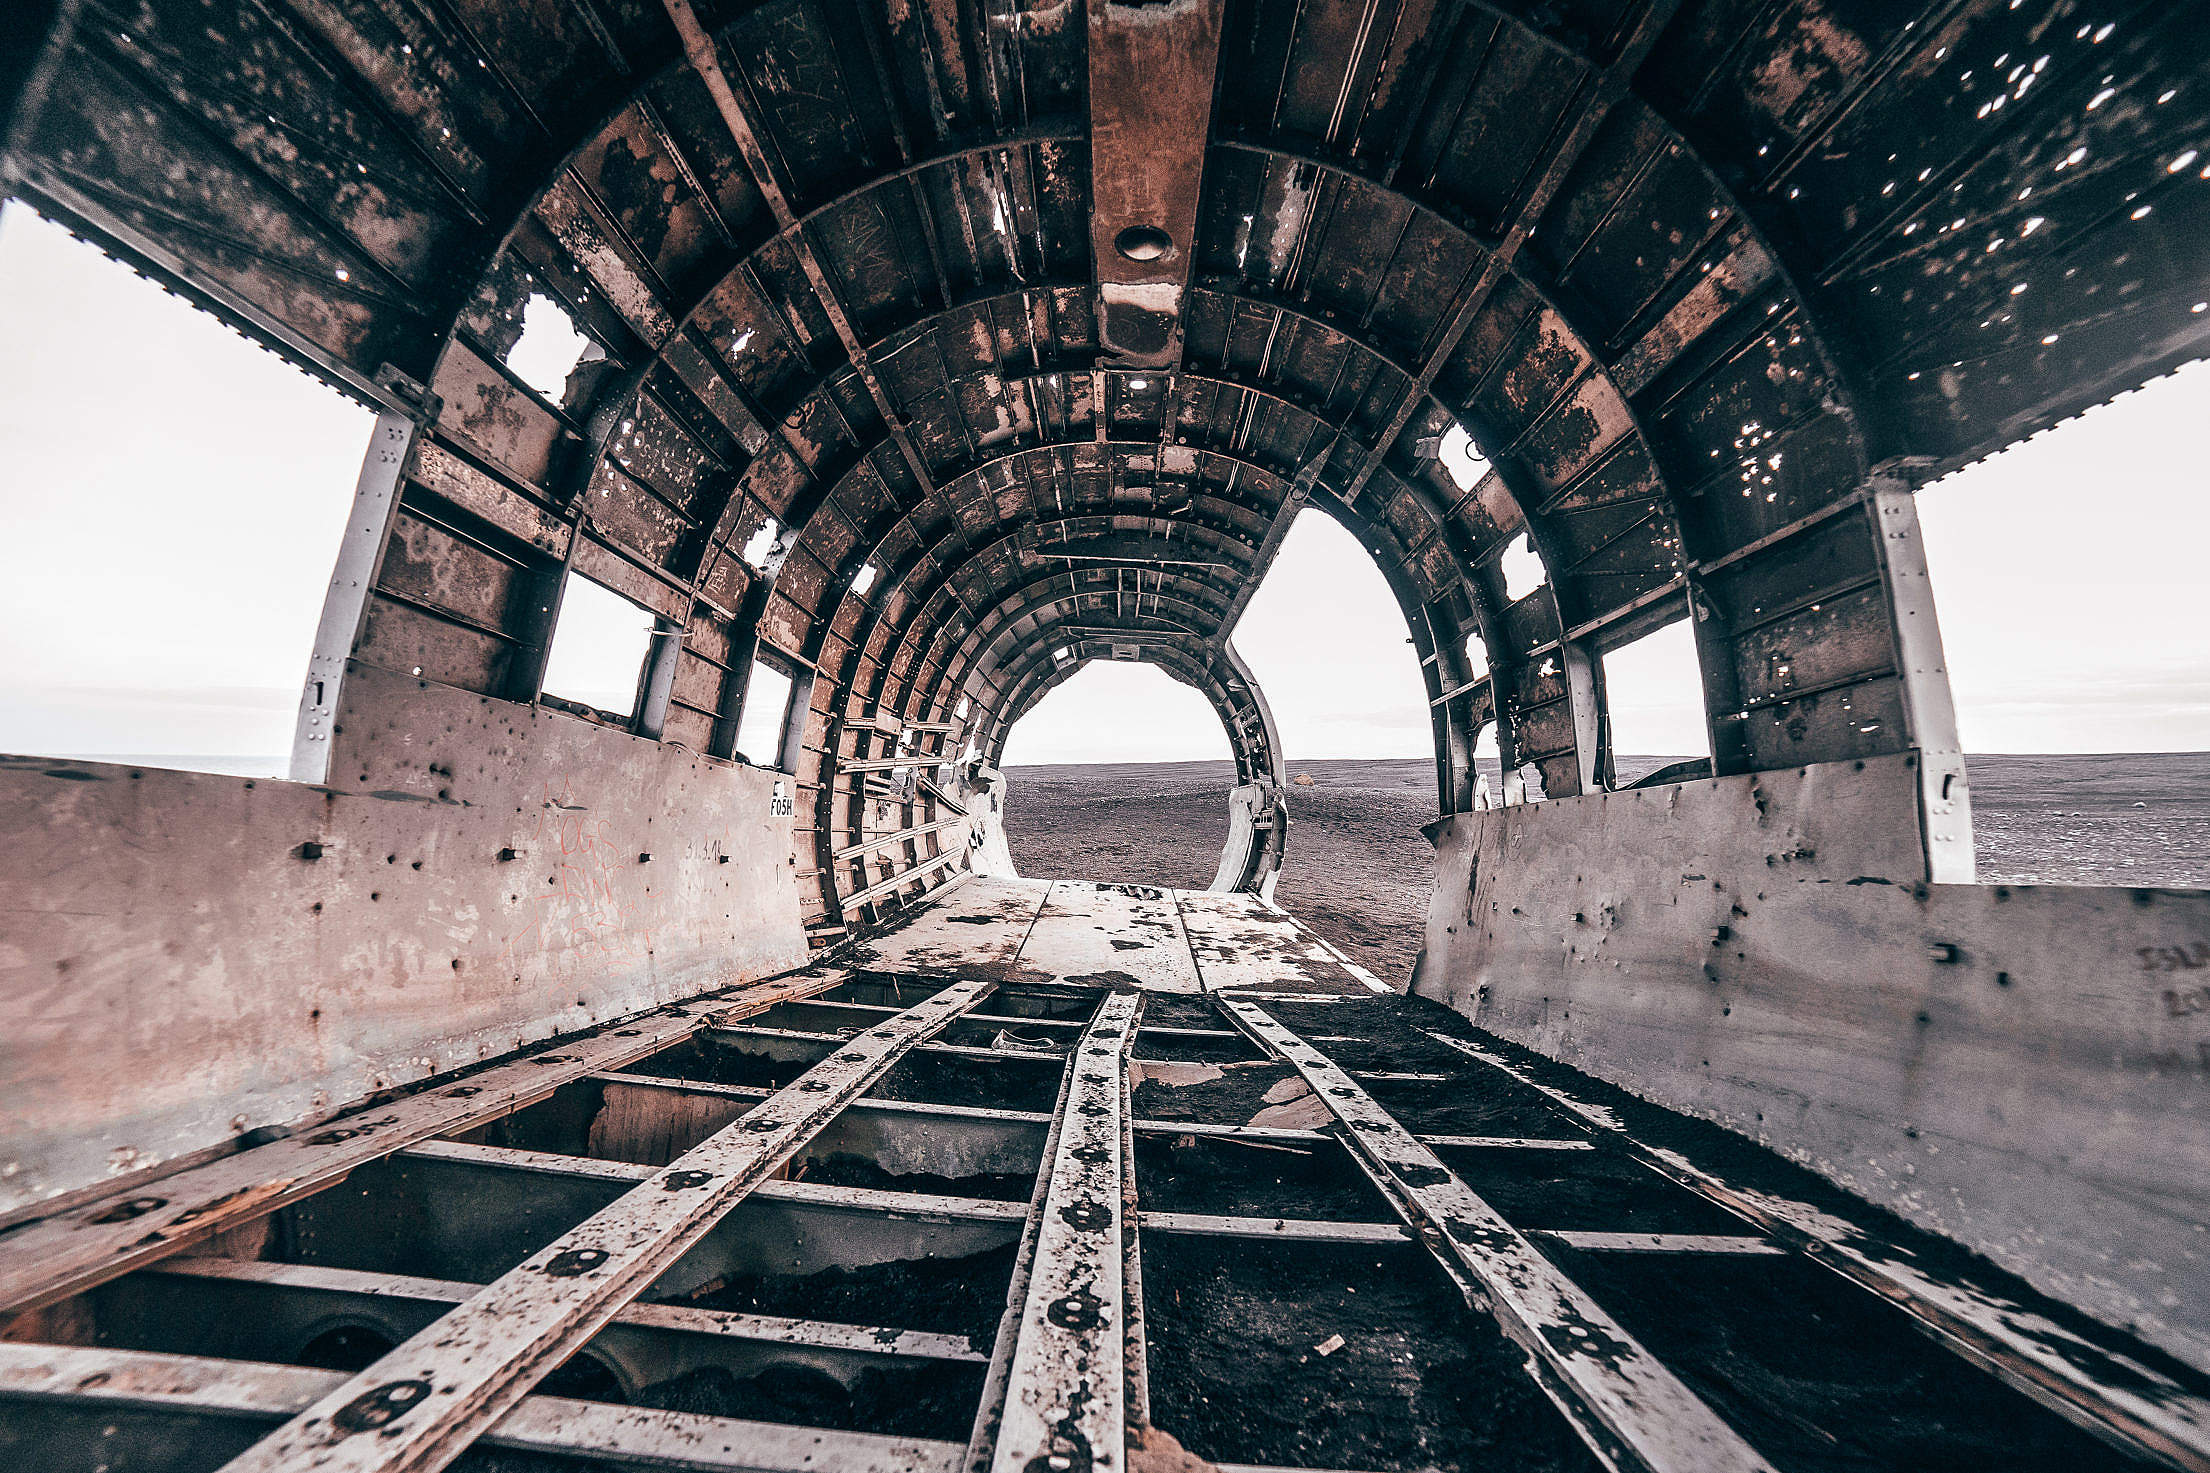 The Wreckage of a Famous Plane in Iceland Free Stock Photo